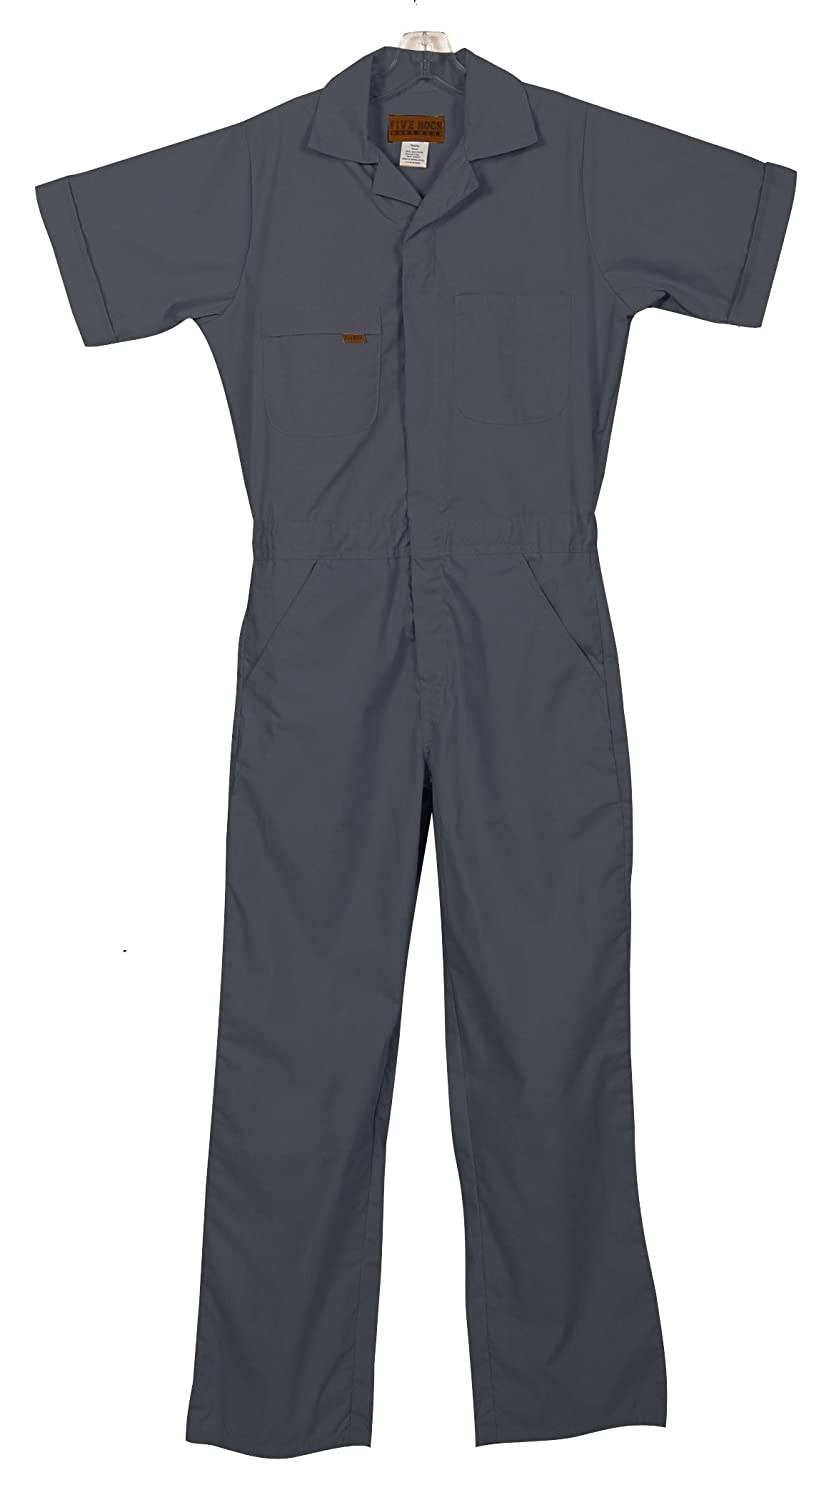 d071fe012fbc Amazon.com  Five Rock Poplin Short Sleeve Unlined Coveralls Relaxed Fit   Overalls And Coveralls Workwear Apparel  Clothing